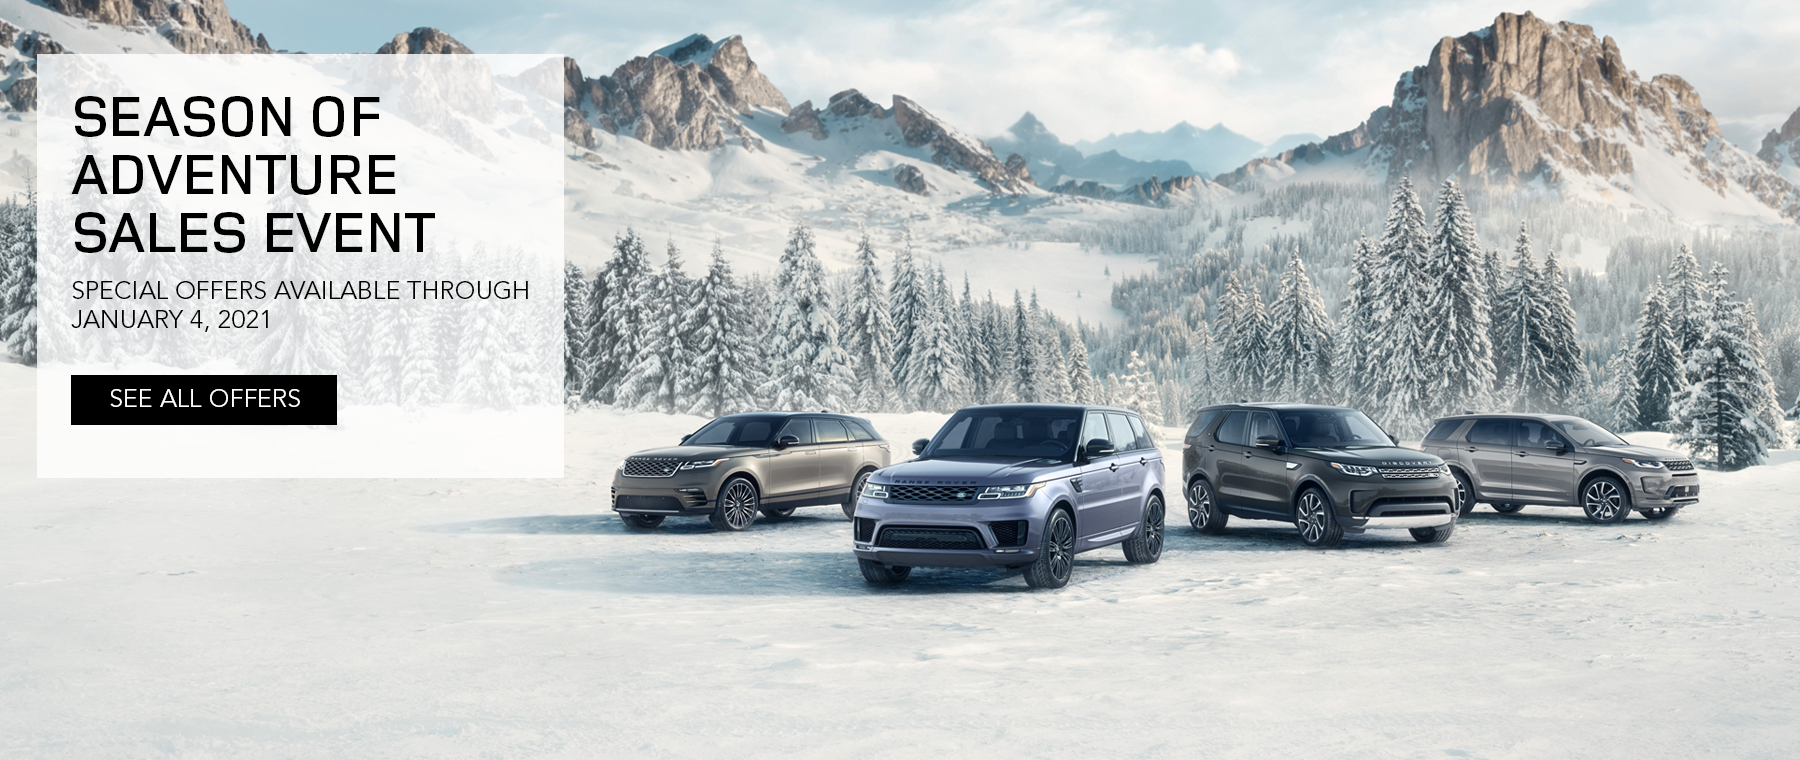 2020 Land Rover Season of Adventure Sales Event